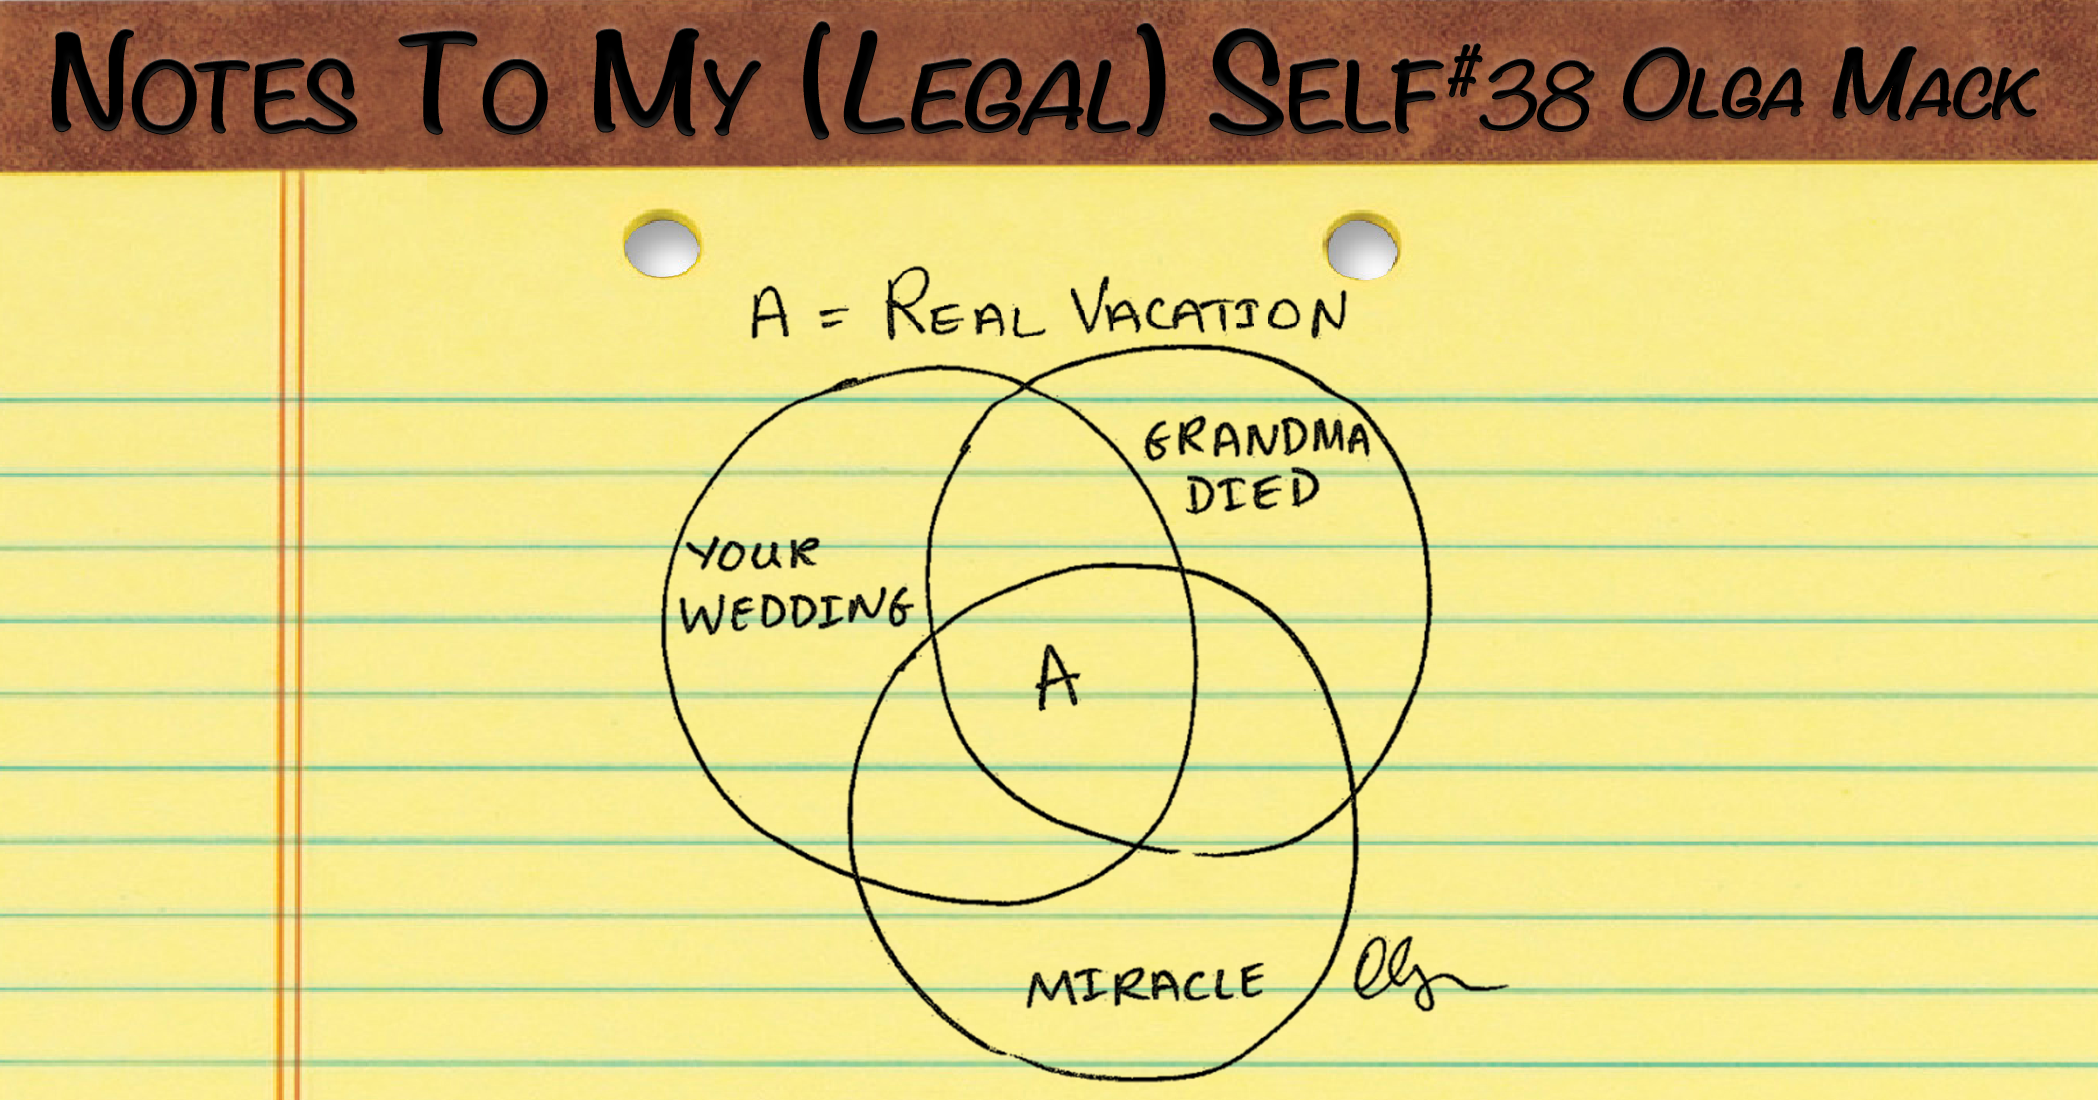 LegalSelf 38 - What It Really Takes To Go On Vacation